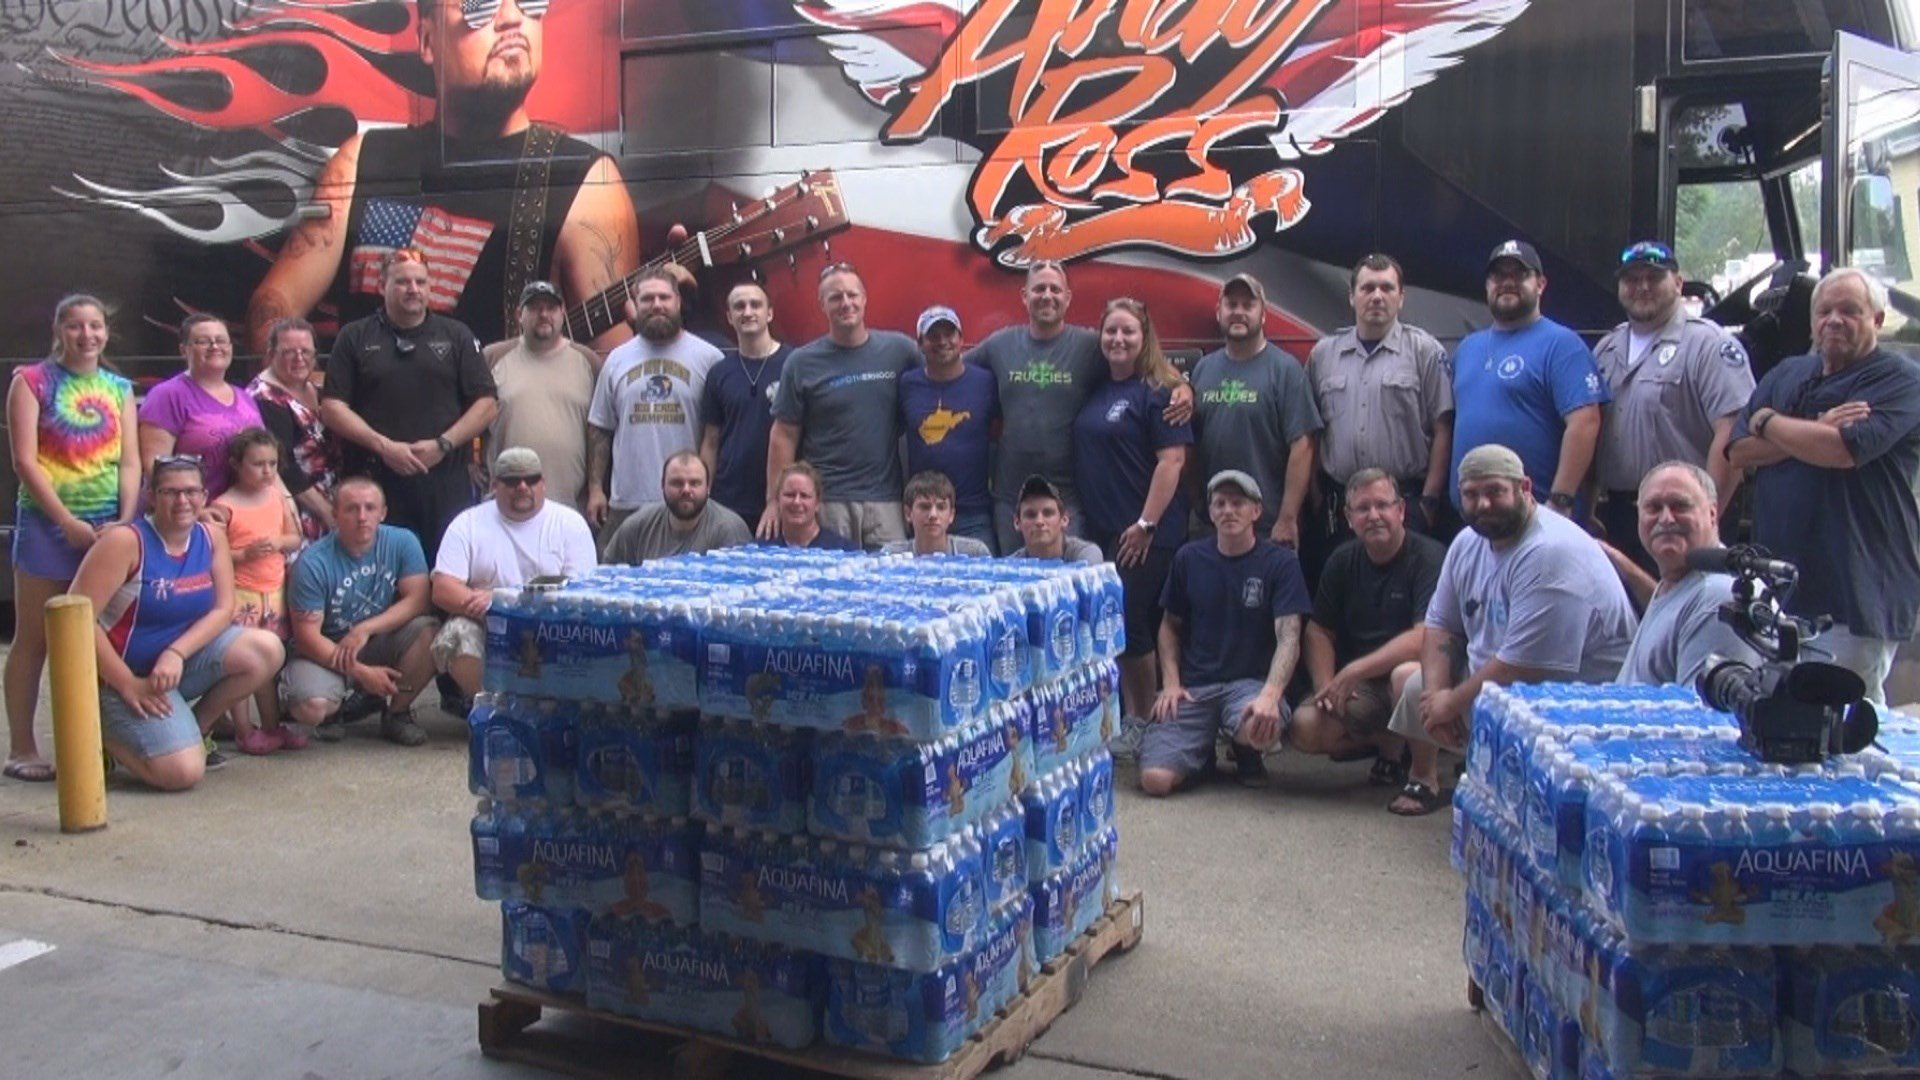 Volunteers with the Shinnston Fire Department pose with the Davisson Brothers, Owen Schmitt, and Andy Ross.